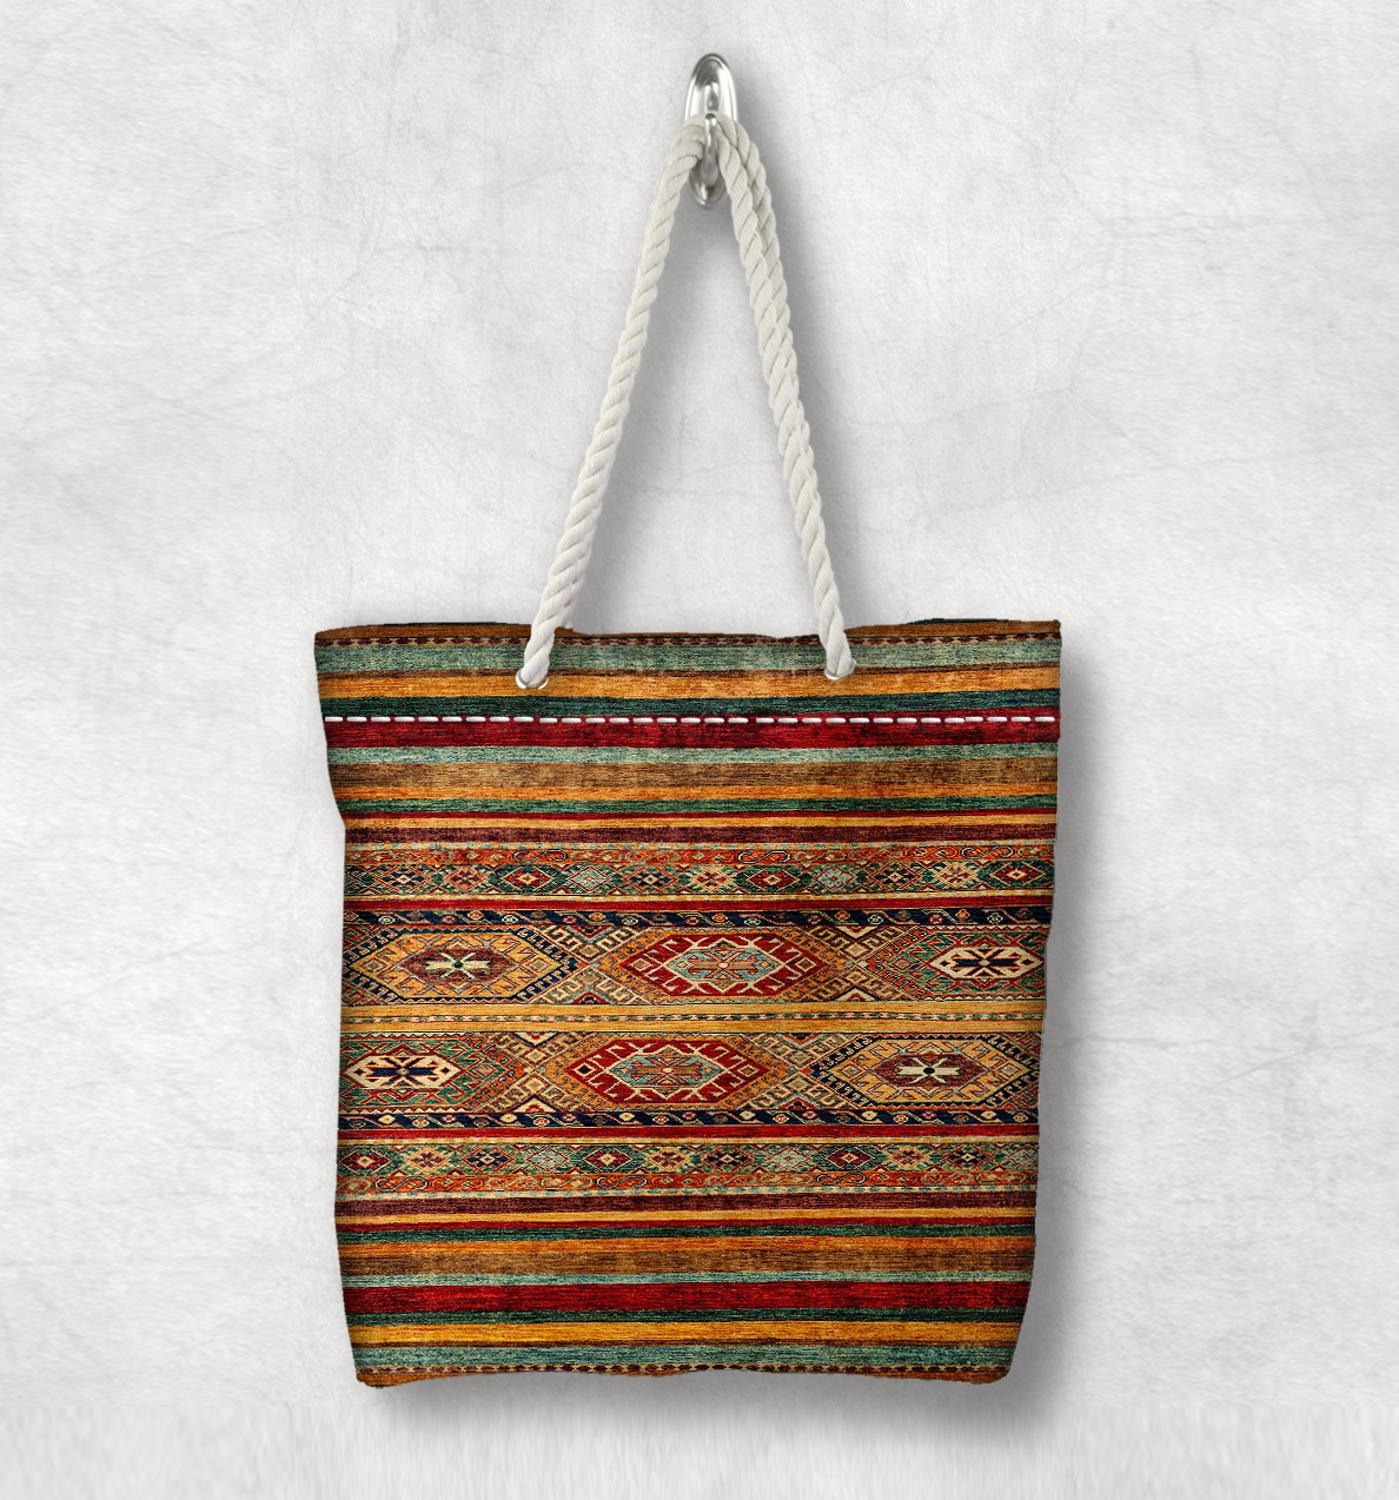 Else Brown Red Retro Anatolia Antique Kilim Design White Rope Handle Canvas Bag Cotton Canvas Zippered Tote Bag Shoulder Bag